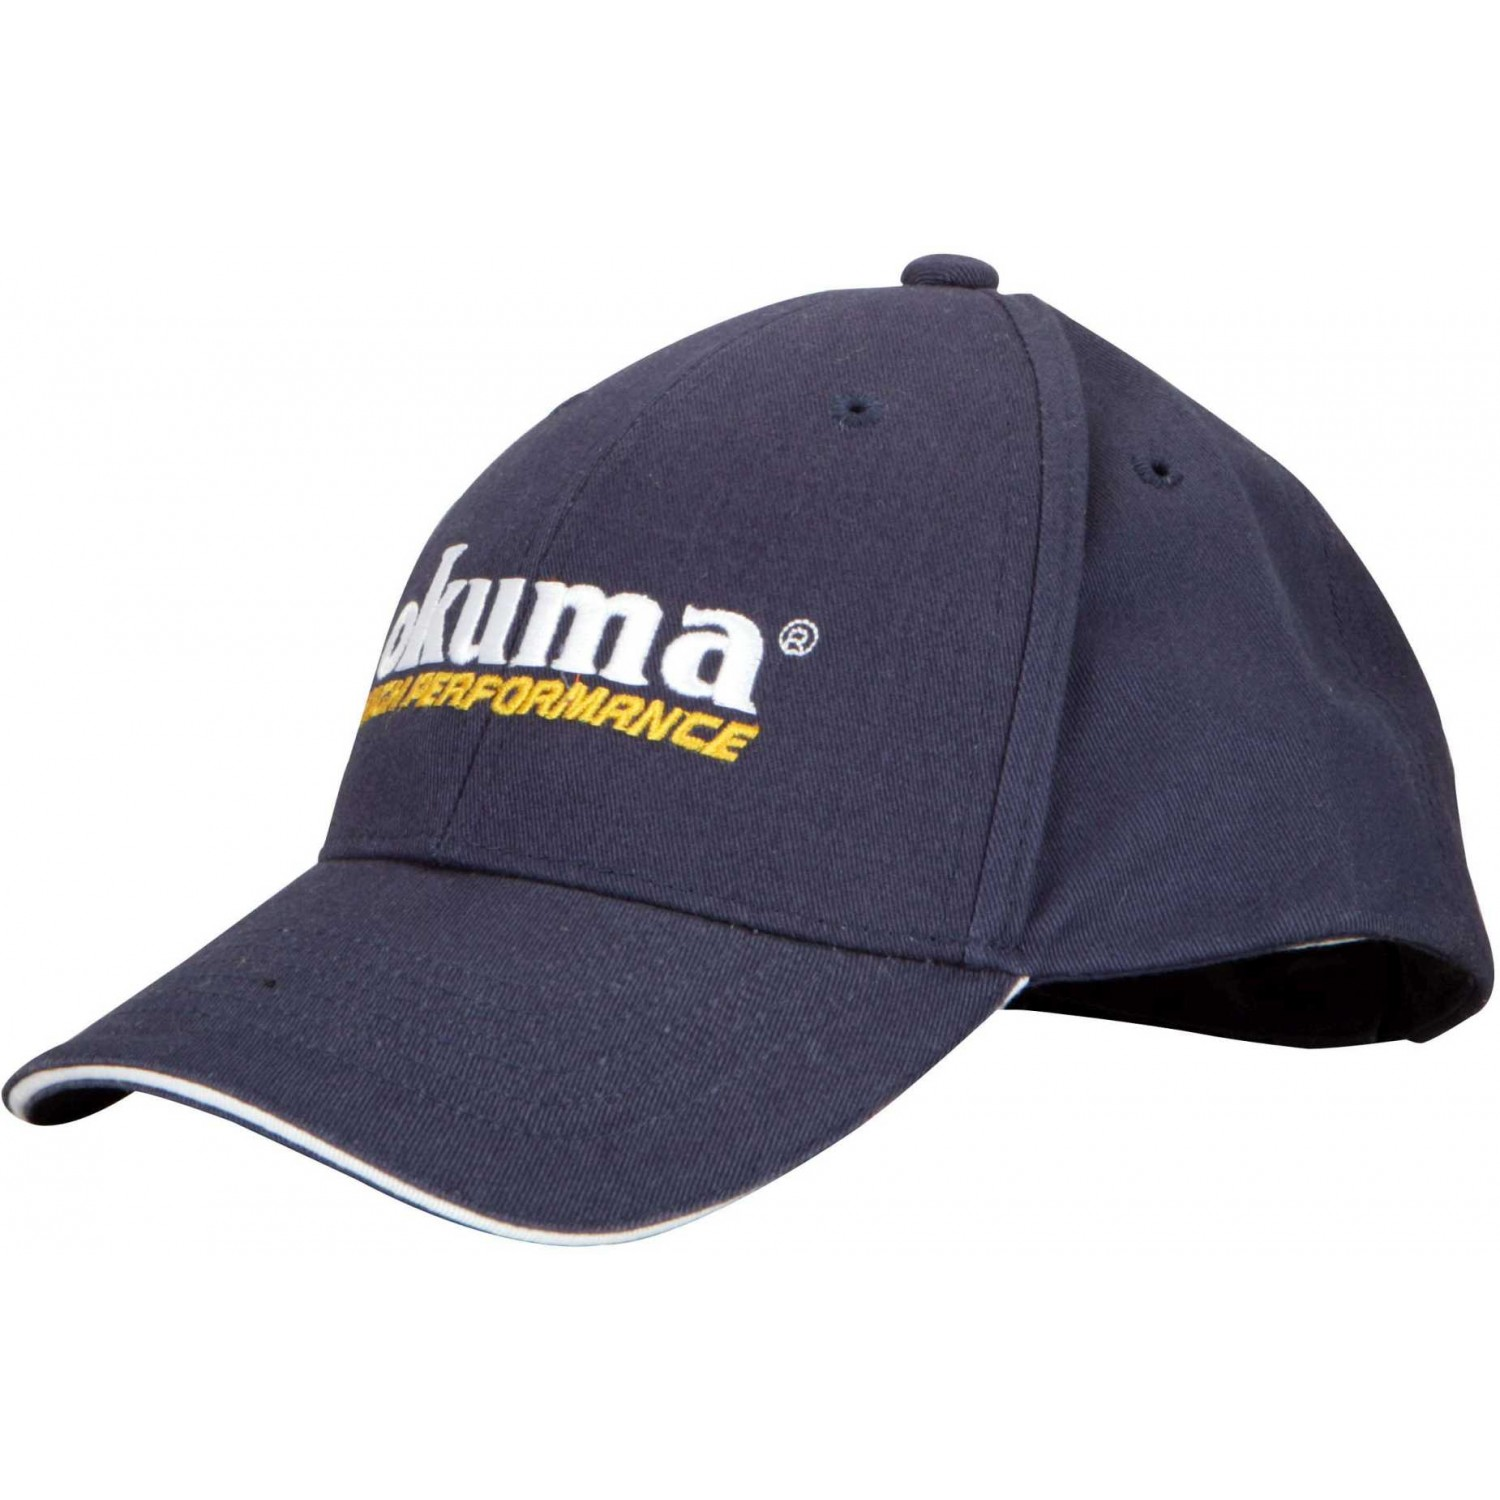 Okuma High Performance Blue Cap One Size